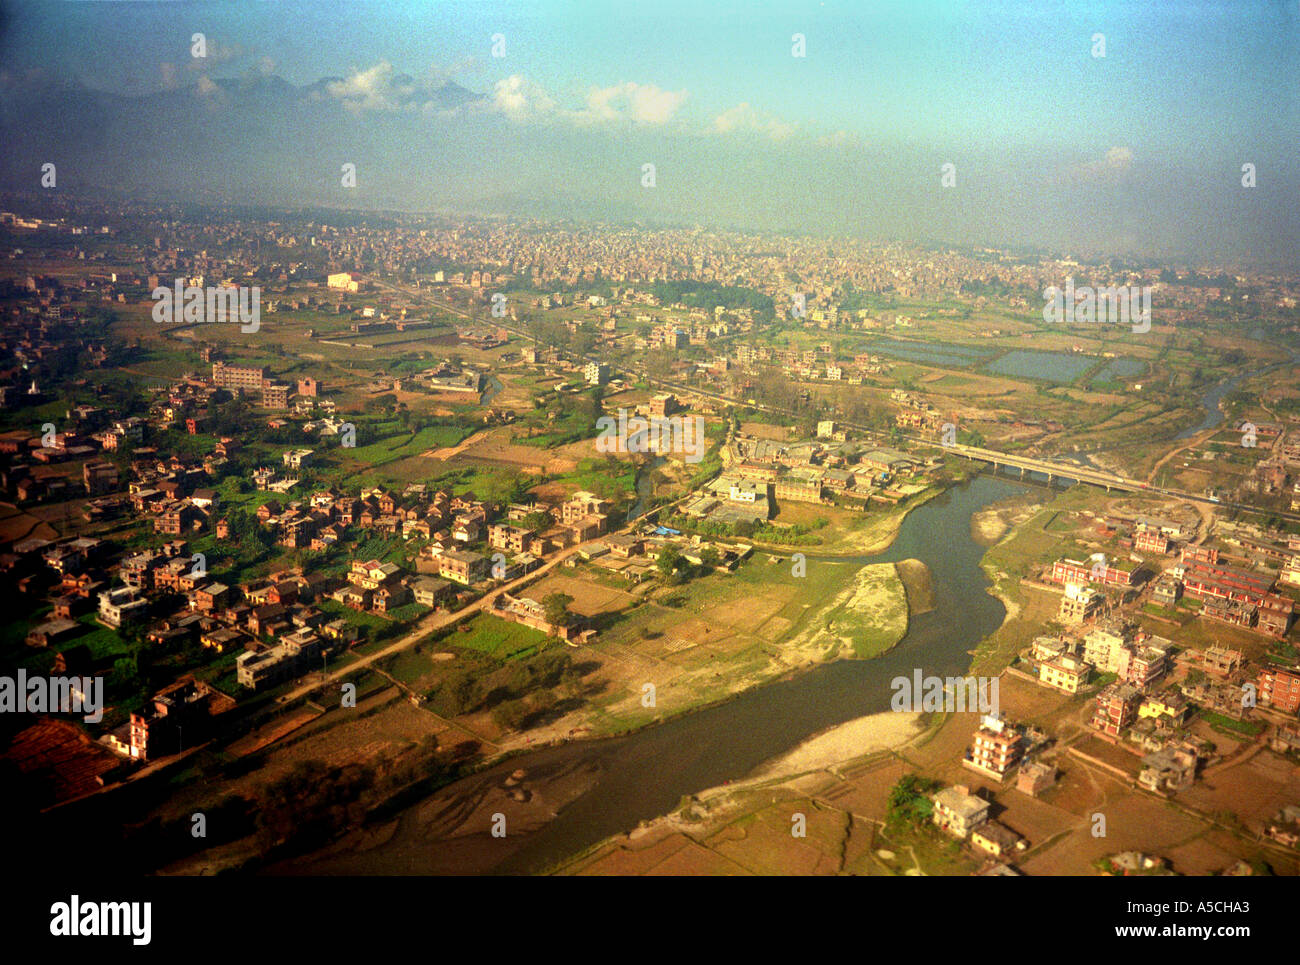 The capital of Nepal Kathmandhu seen on the approach to the airport - Stock Image